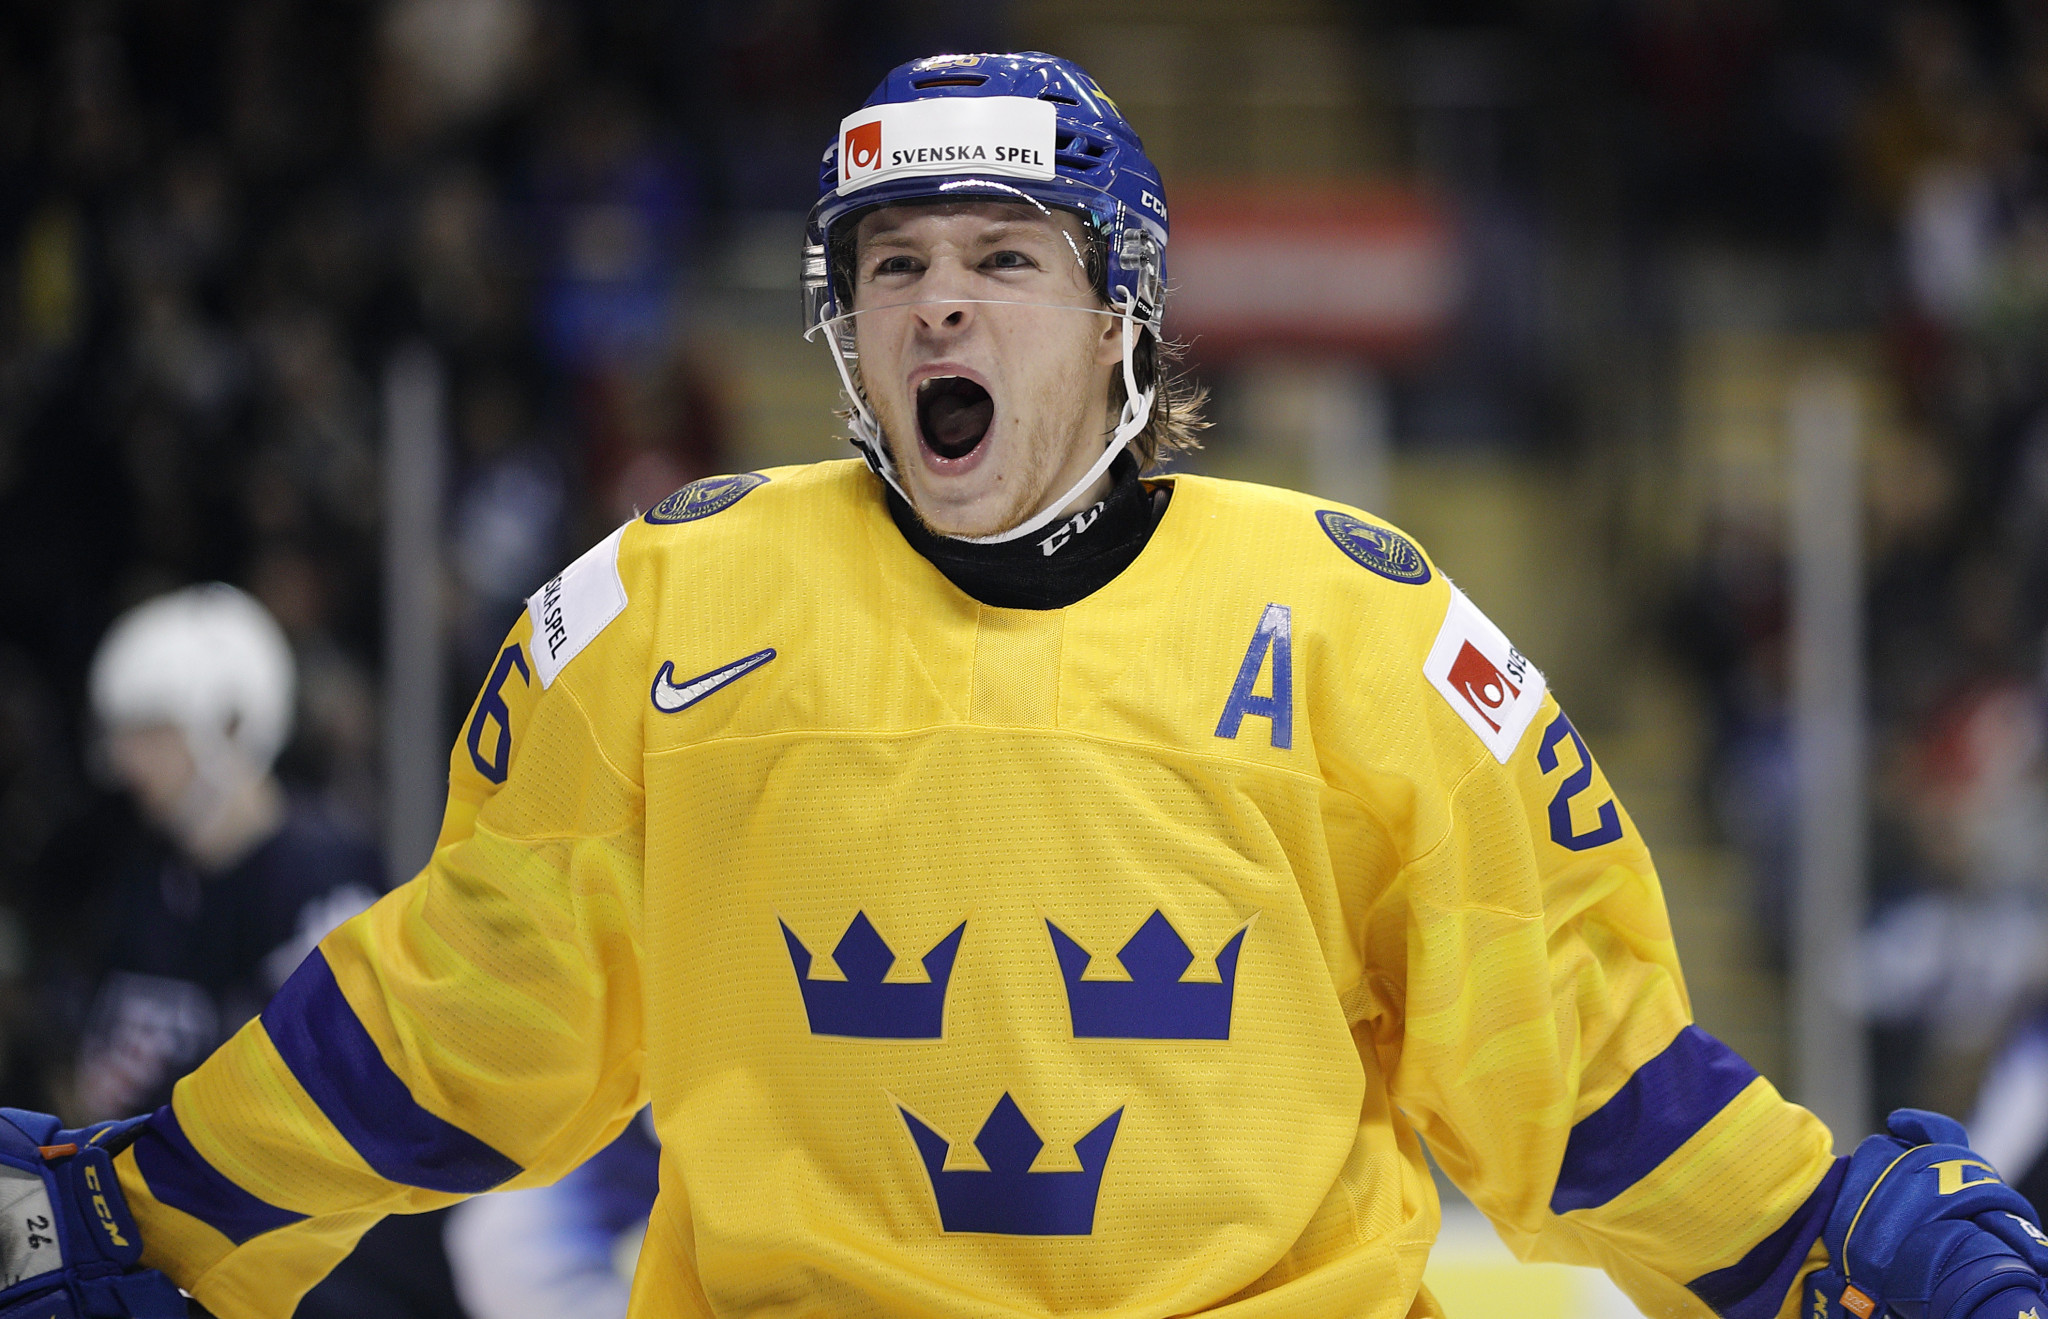 Rickard Hugg celebrates scoring for Sweden against the United States in the IIHF World Junior Championships in Vancouver in a thrilling match the Swedes eventually won 5-4 after squandering a four-goal lead ©Getty Images